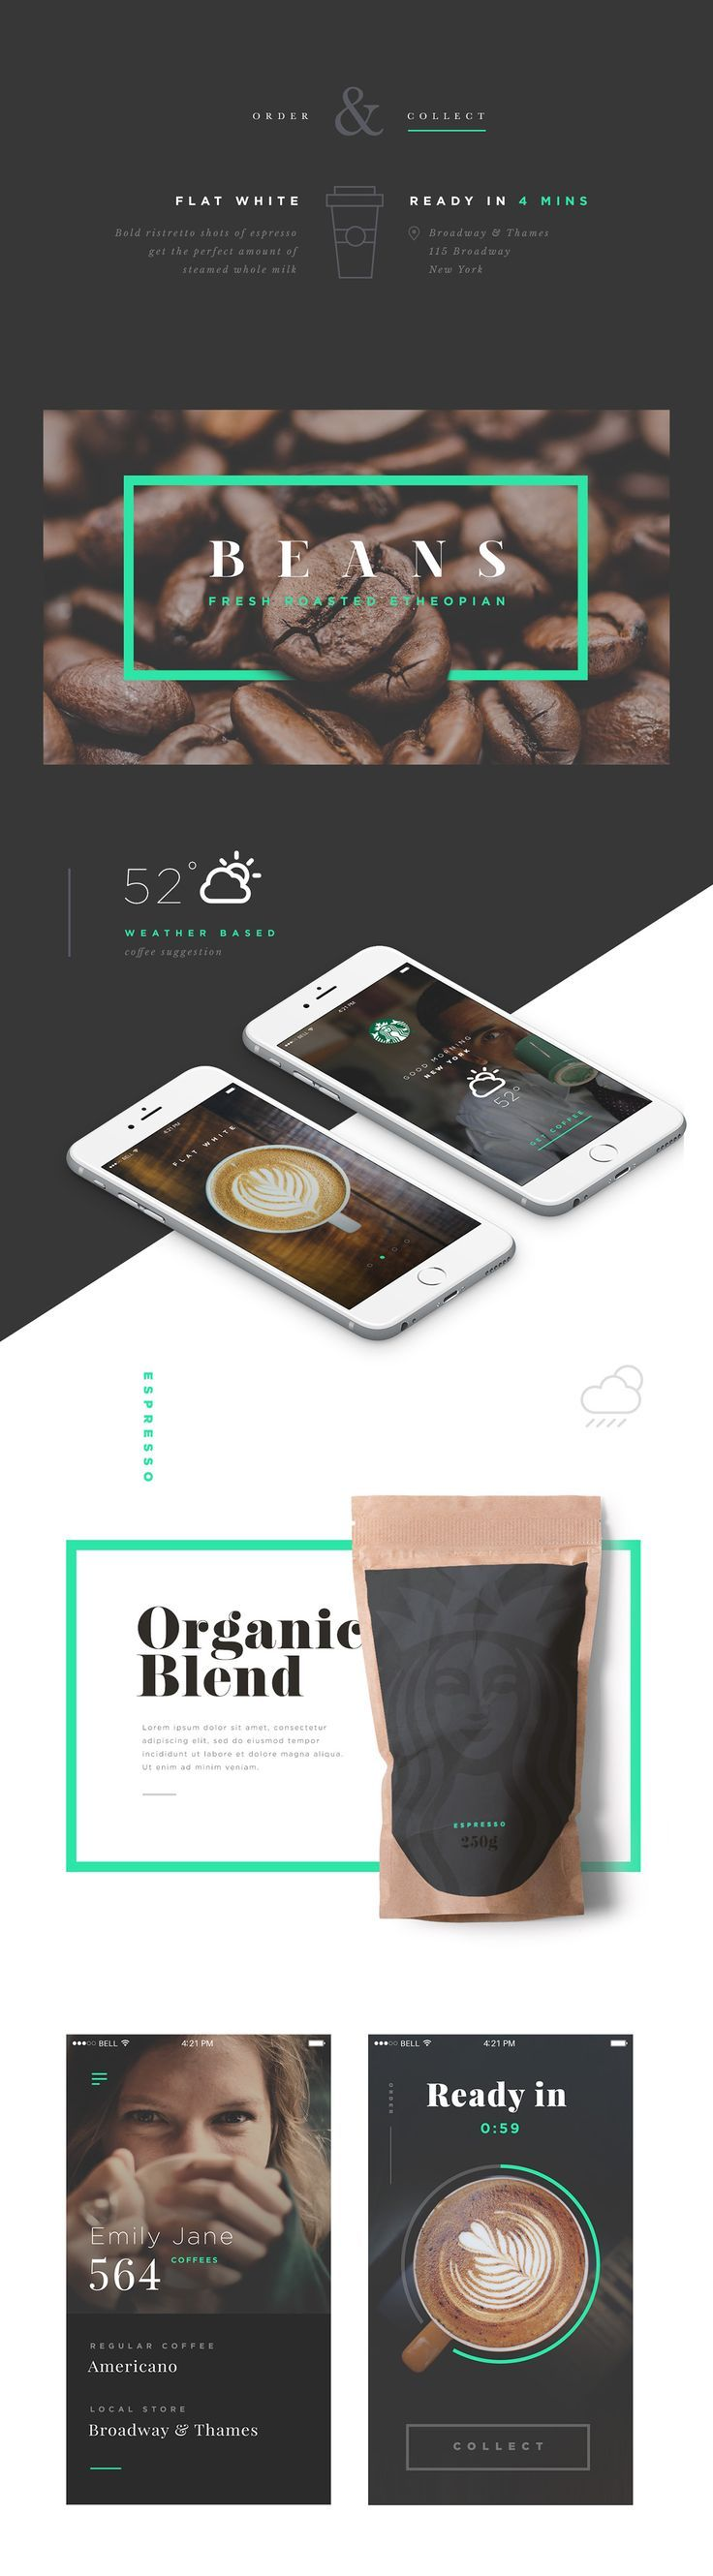 Starbucks is an amazing brand to work on. Coffee is also such a necessary part of life. I looked at the user experience waking up in the morning and getting coffee as quickly as possible through a visual journey based on weather suggestions.. If you like UX, design, or design thinking, check out theuxblog.com